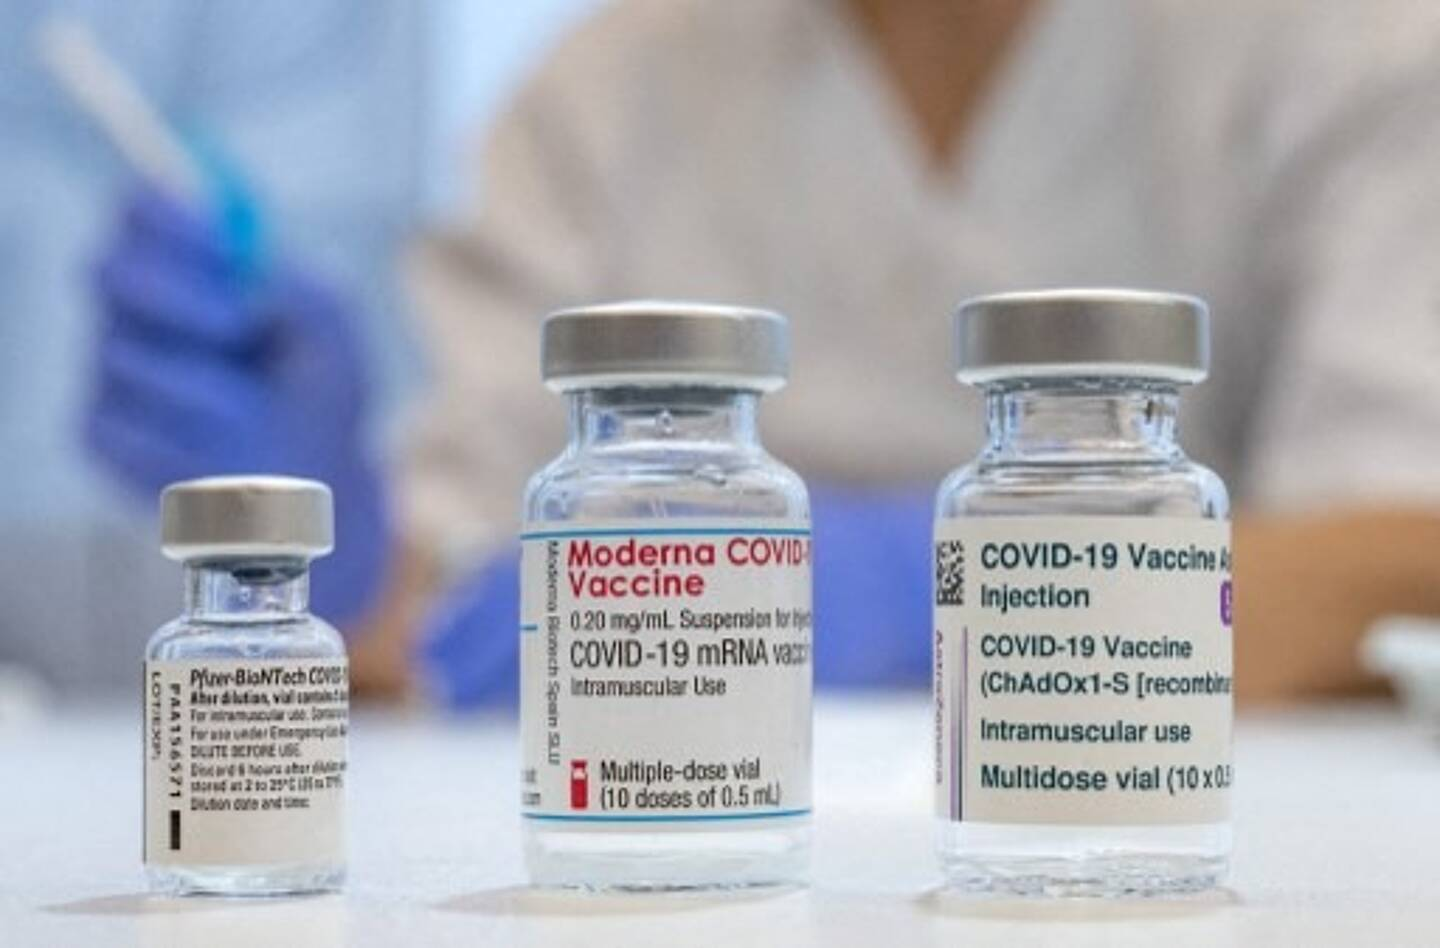 Illustration des vaccins contre la Covid-19